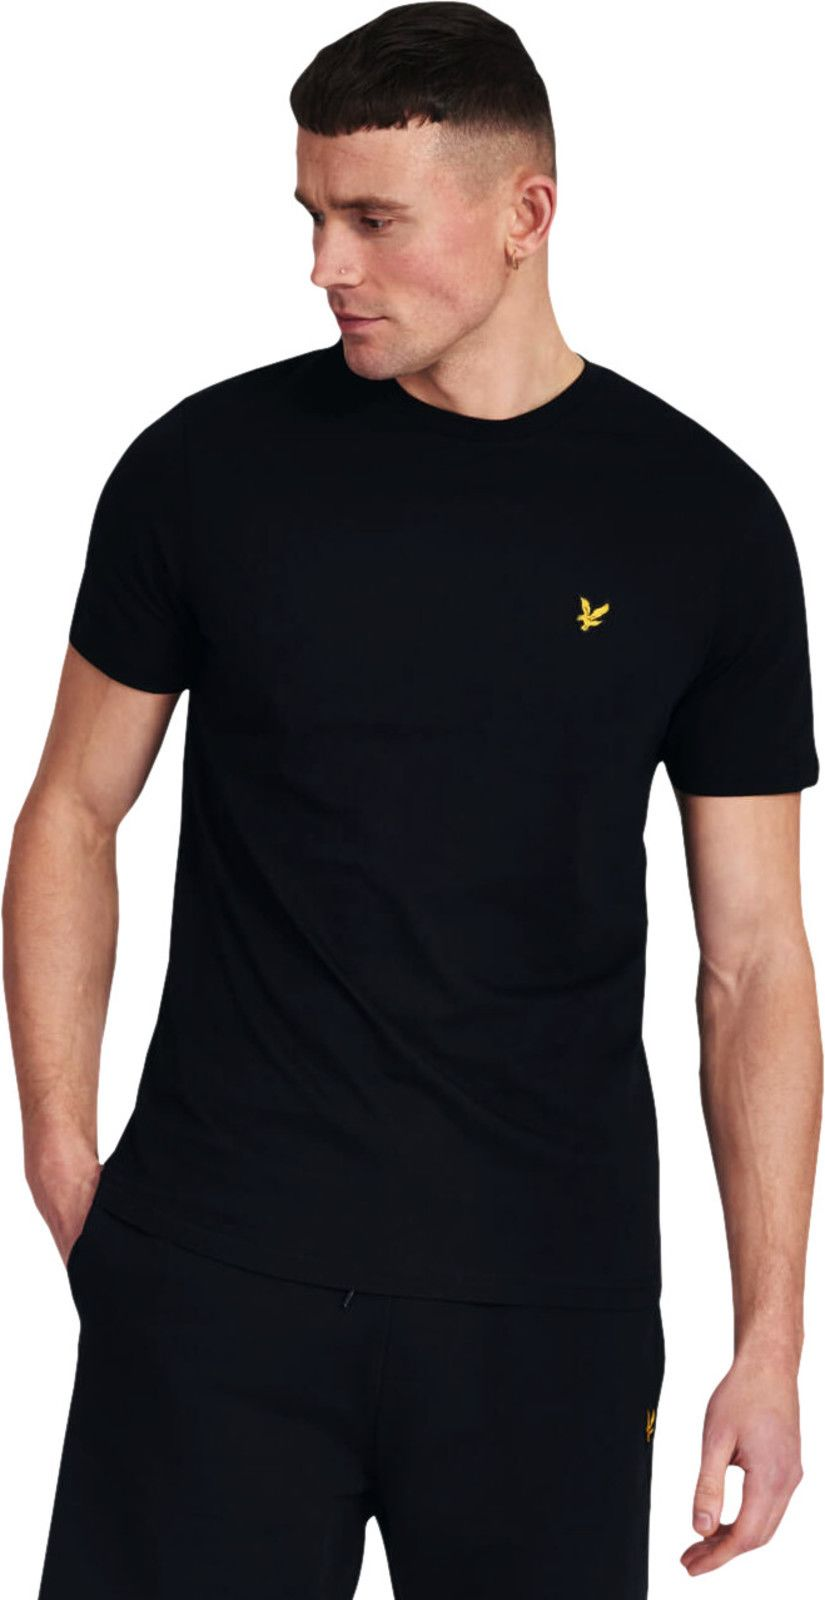 Lyle & Scott T-Shirt Black